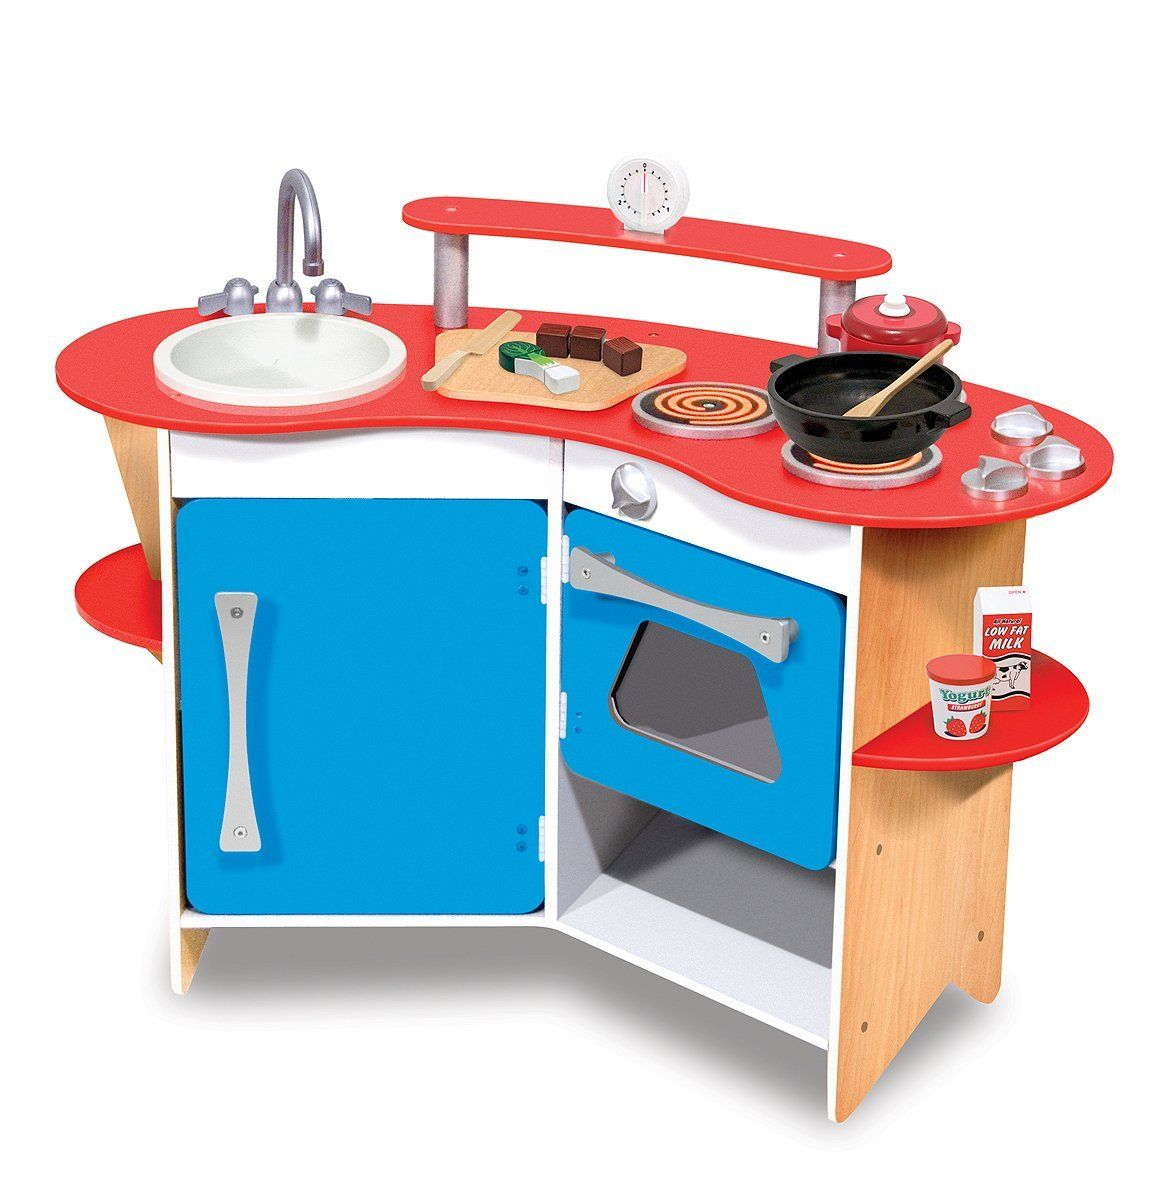 Melissa & Doug Cook\'s Corner Wooden Kitchen: Amazon.co.uk: Toys ...